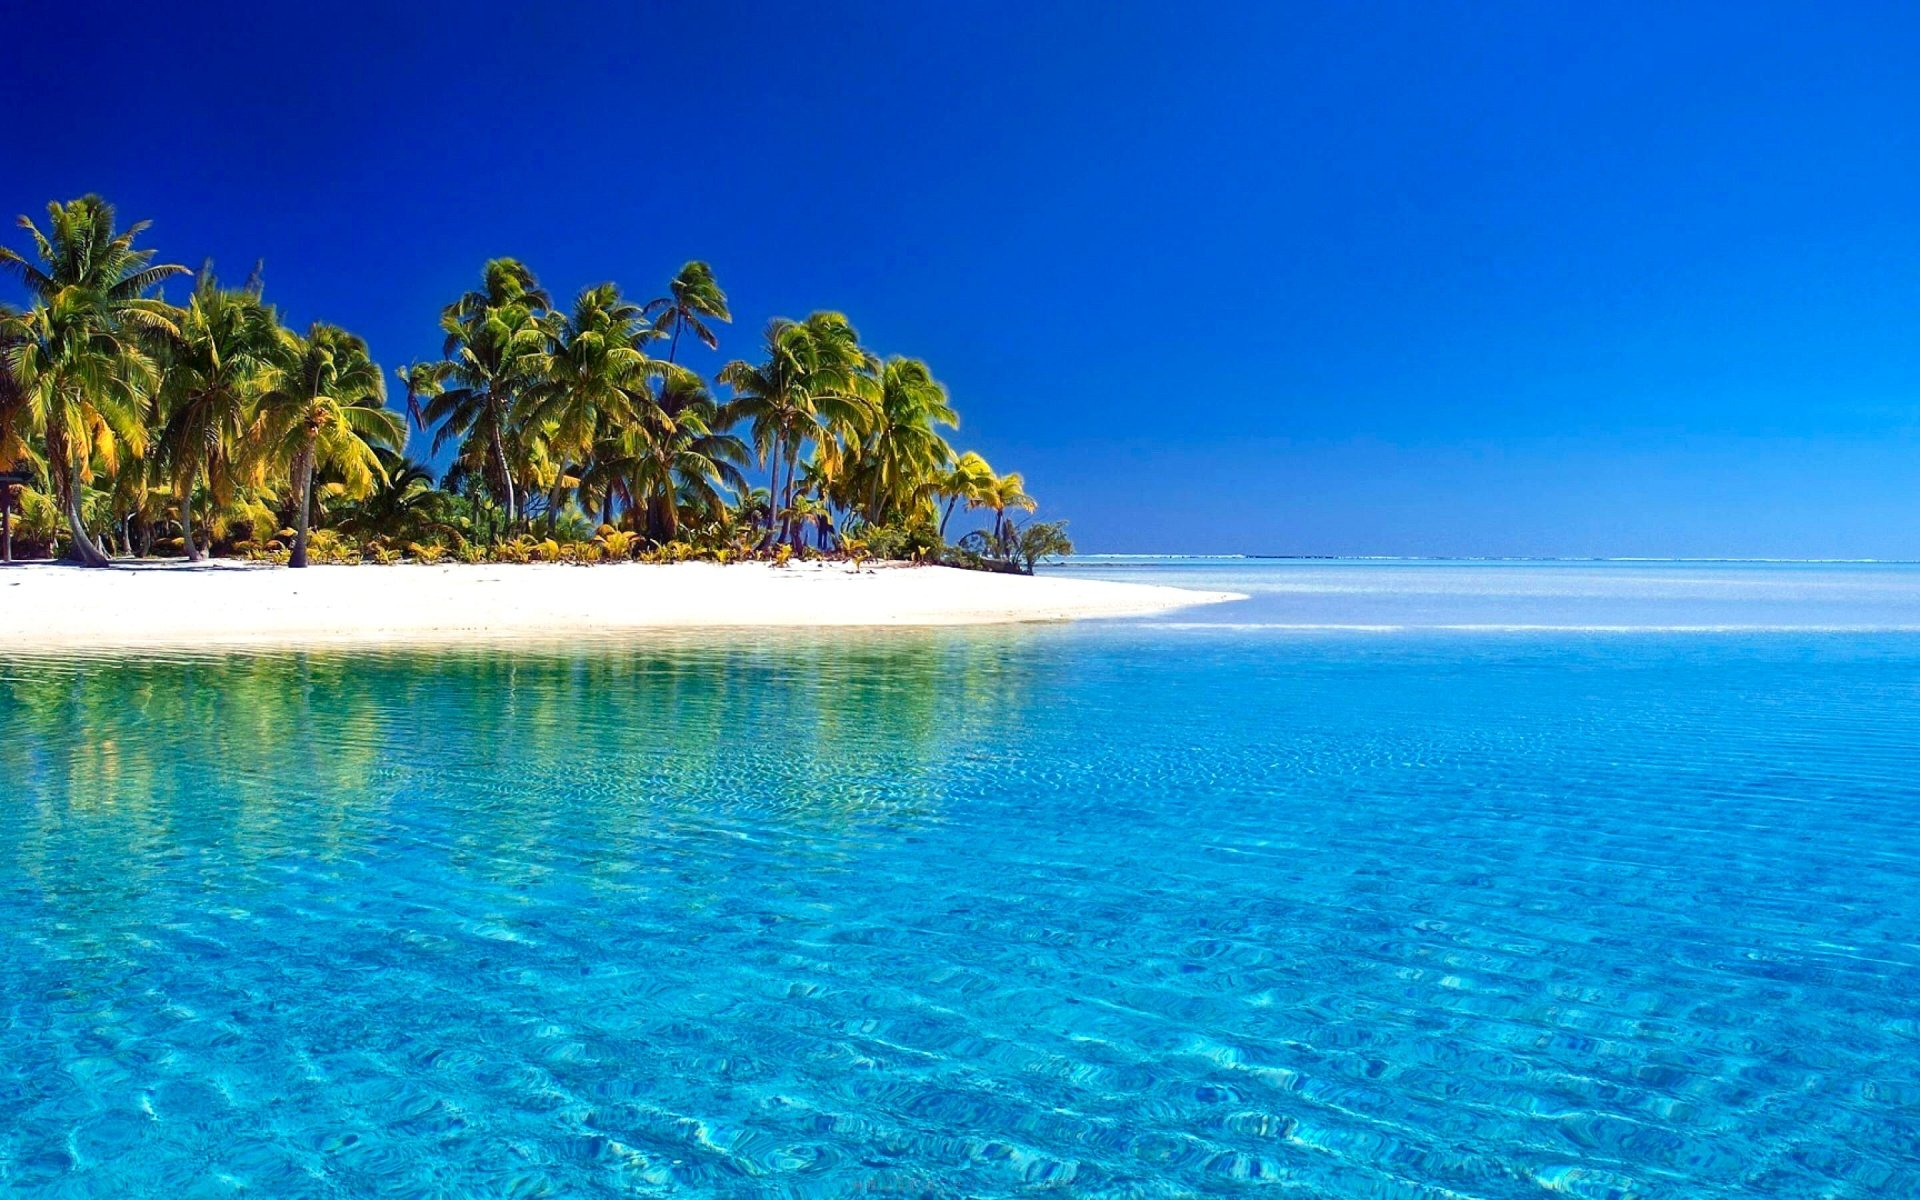 Earth - Tropical  Palm Tree Beach Horizon Island Blue Sea Azure Sunny Summer Wallpaper